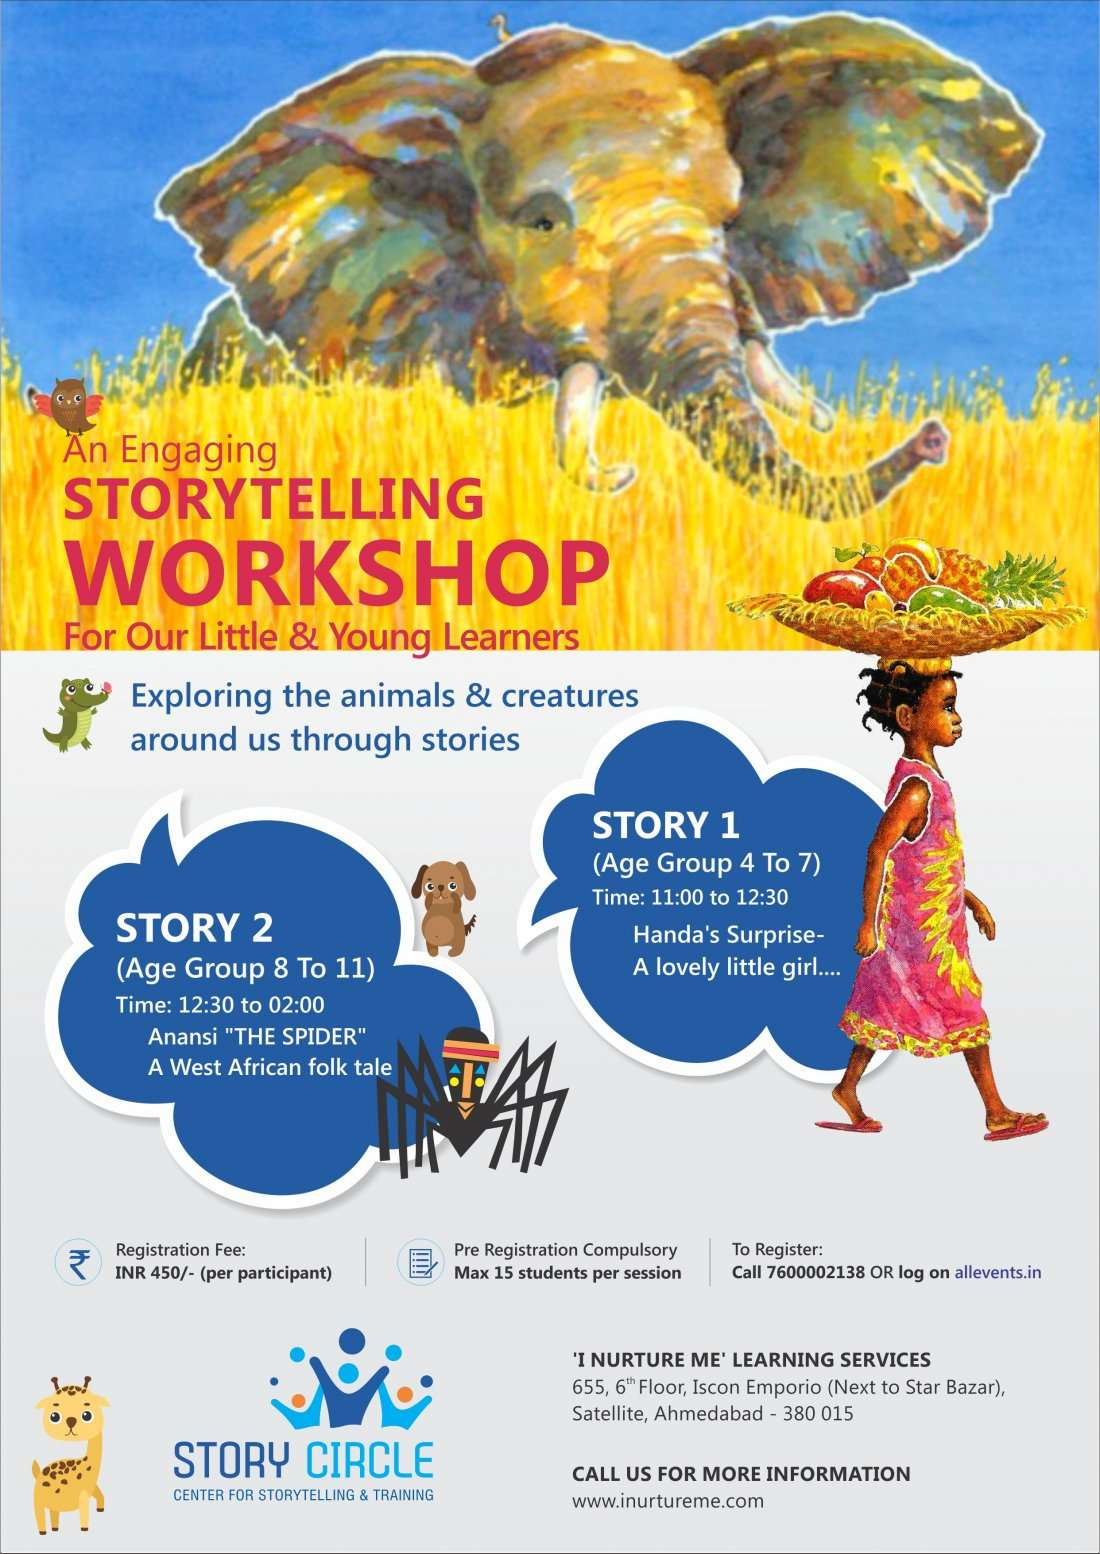 https://creativeyatra.com/wp-content/uploads/2018/02/Hakuna-Matata-African-Folk-Storytelling-workshop-for-children-aged-4-to-10-yrs.jpg